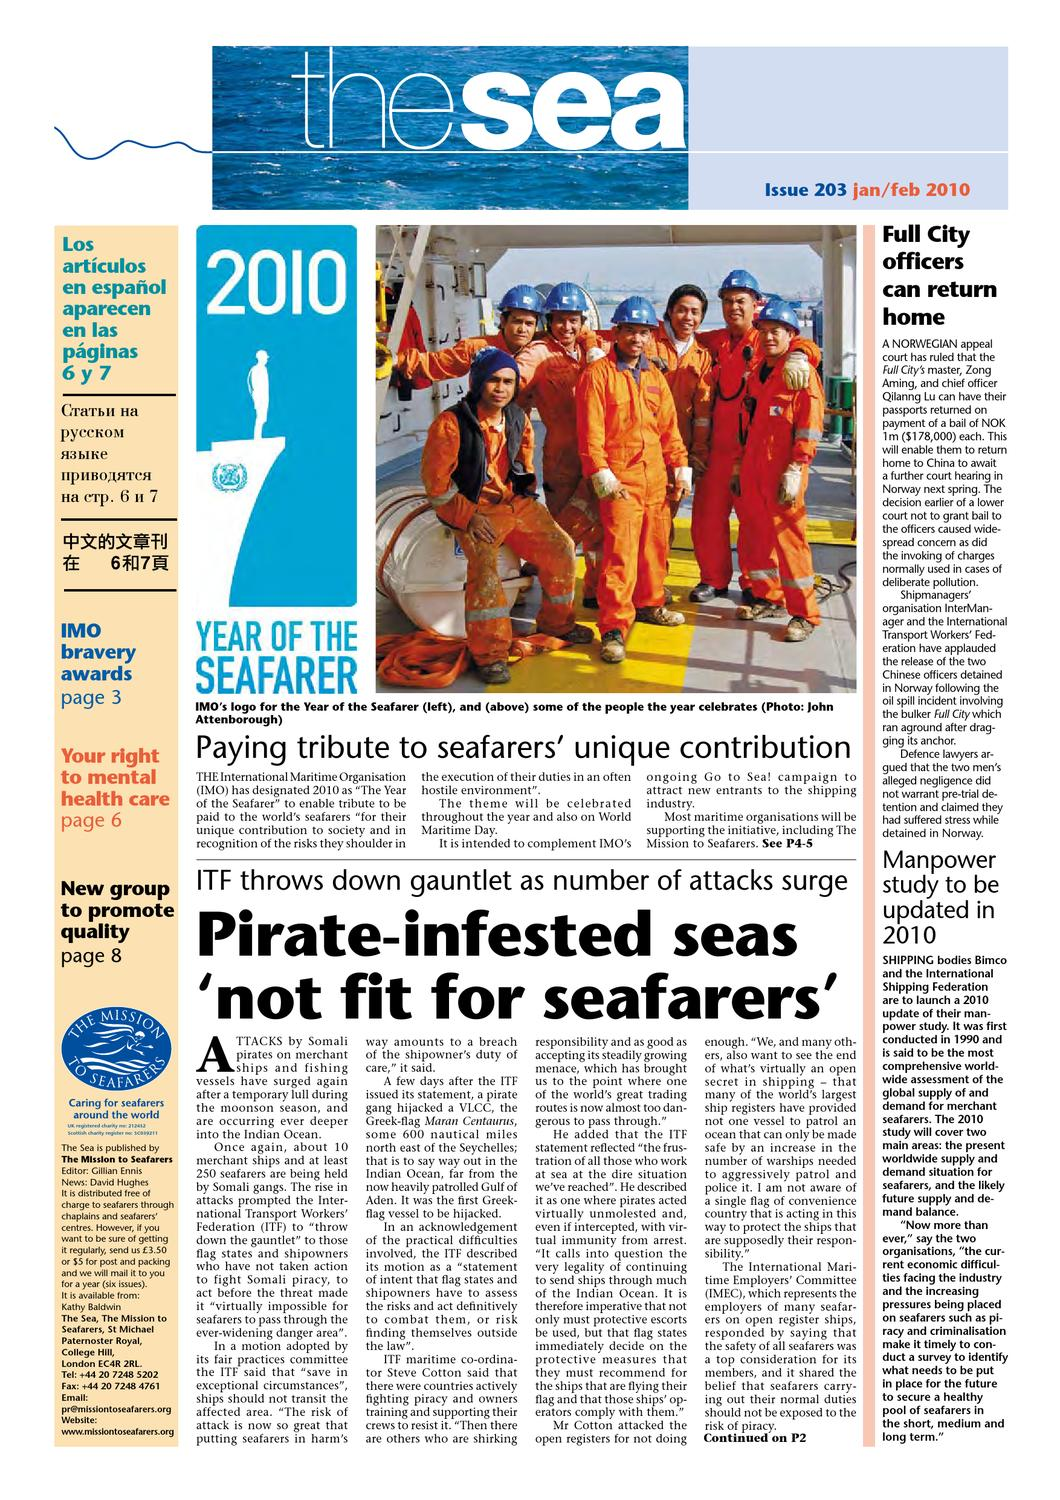 The Sea, January/February 2010 by Michael Keating - issuu